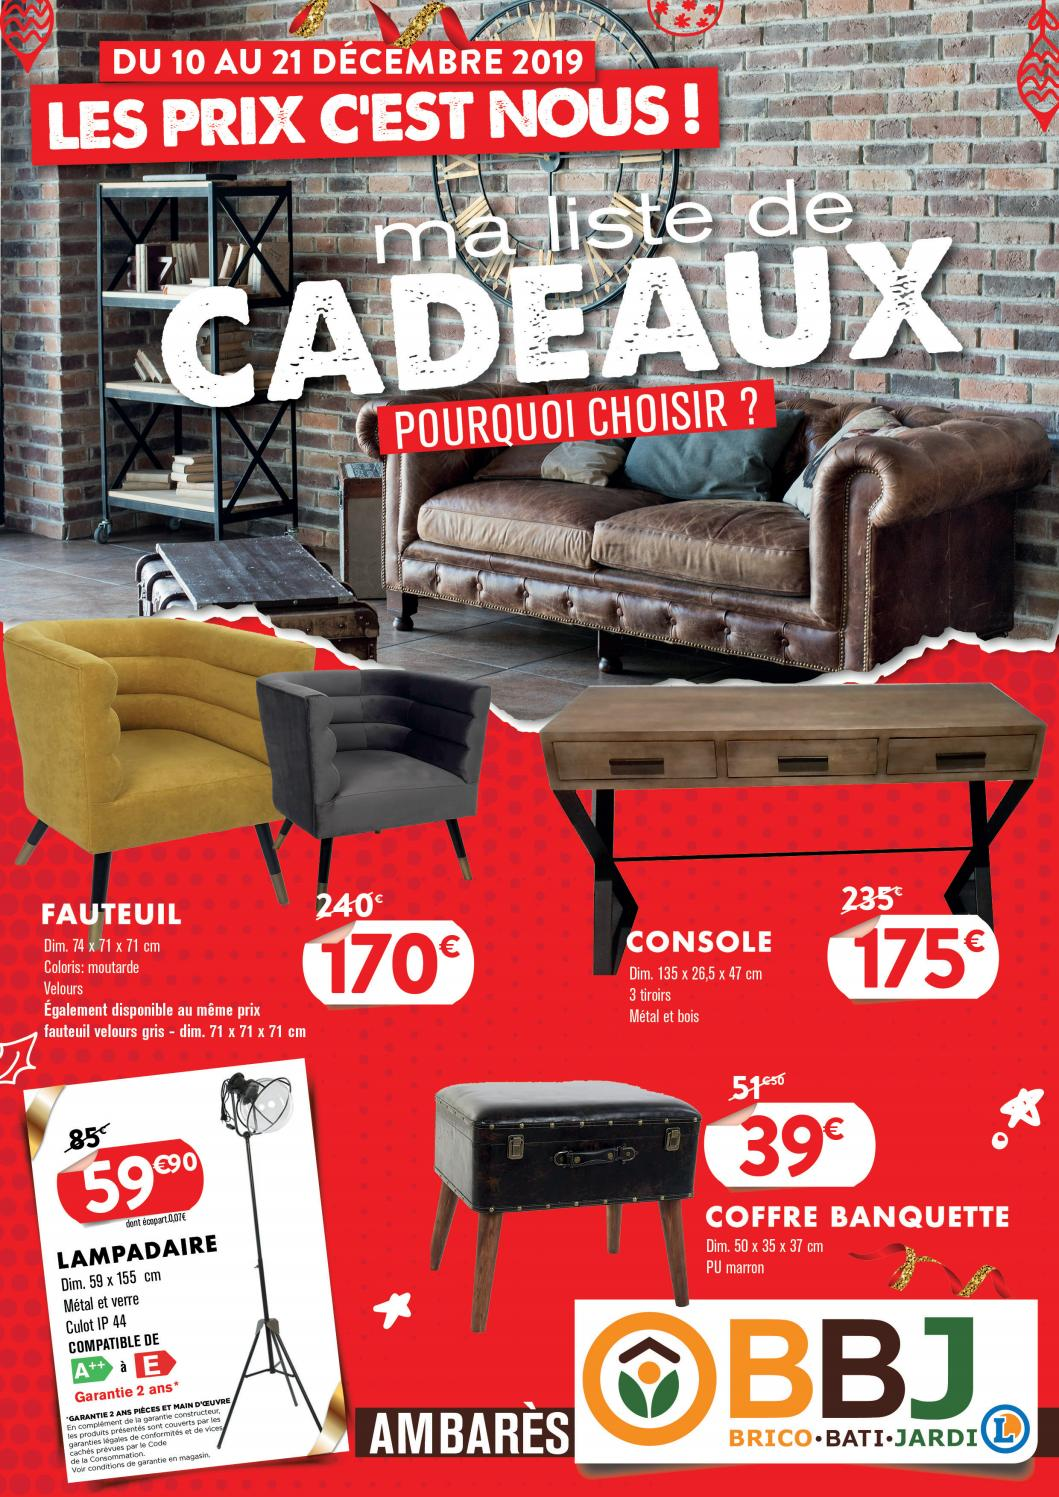 Pcn Bbj Special Cadeaux By Sodia Aquitaine Issuu